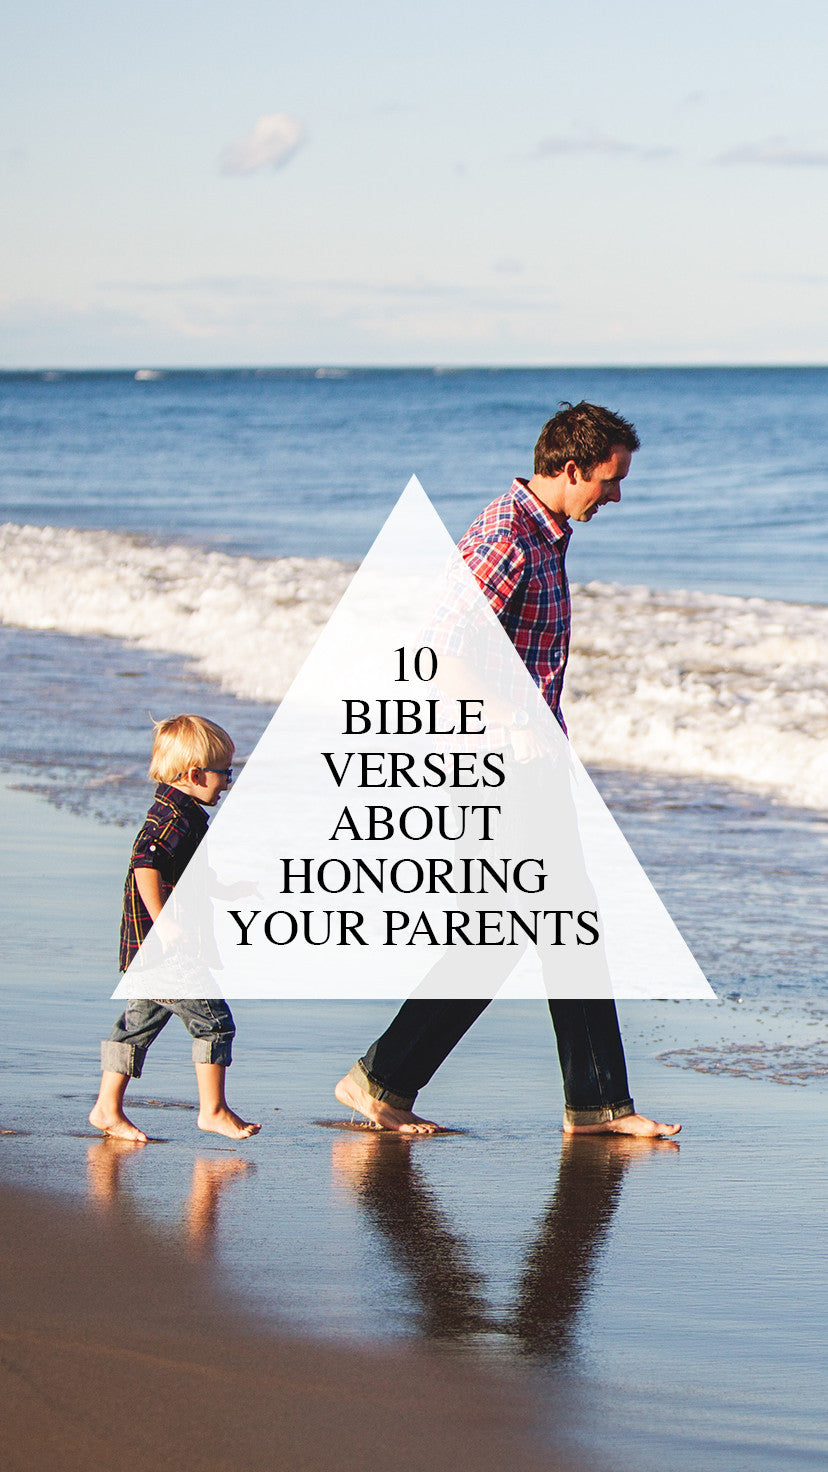 10 verses about honoring your parents walk in love